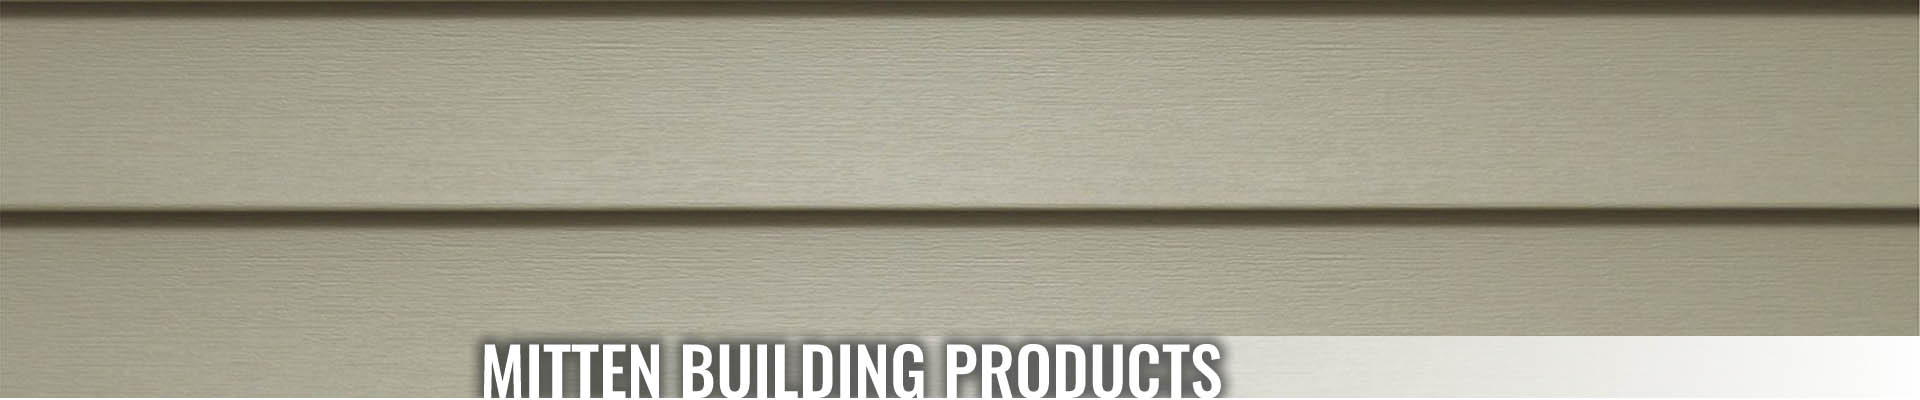 Mitten Vinyl Siding at Turkstra Lumber-Designer Showcase (Windows, doors, trim, hardware, columns, decks). Visit one of 11 convenient locations across Southwestern Ontario.